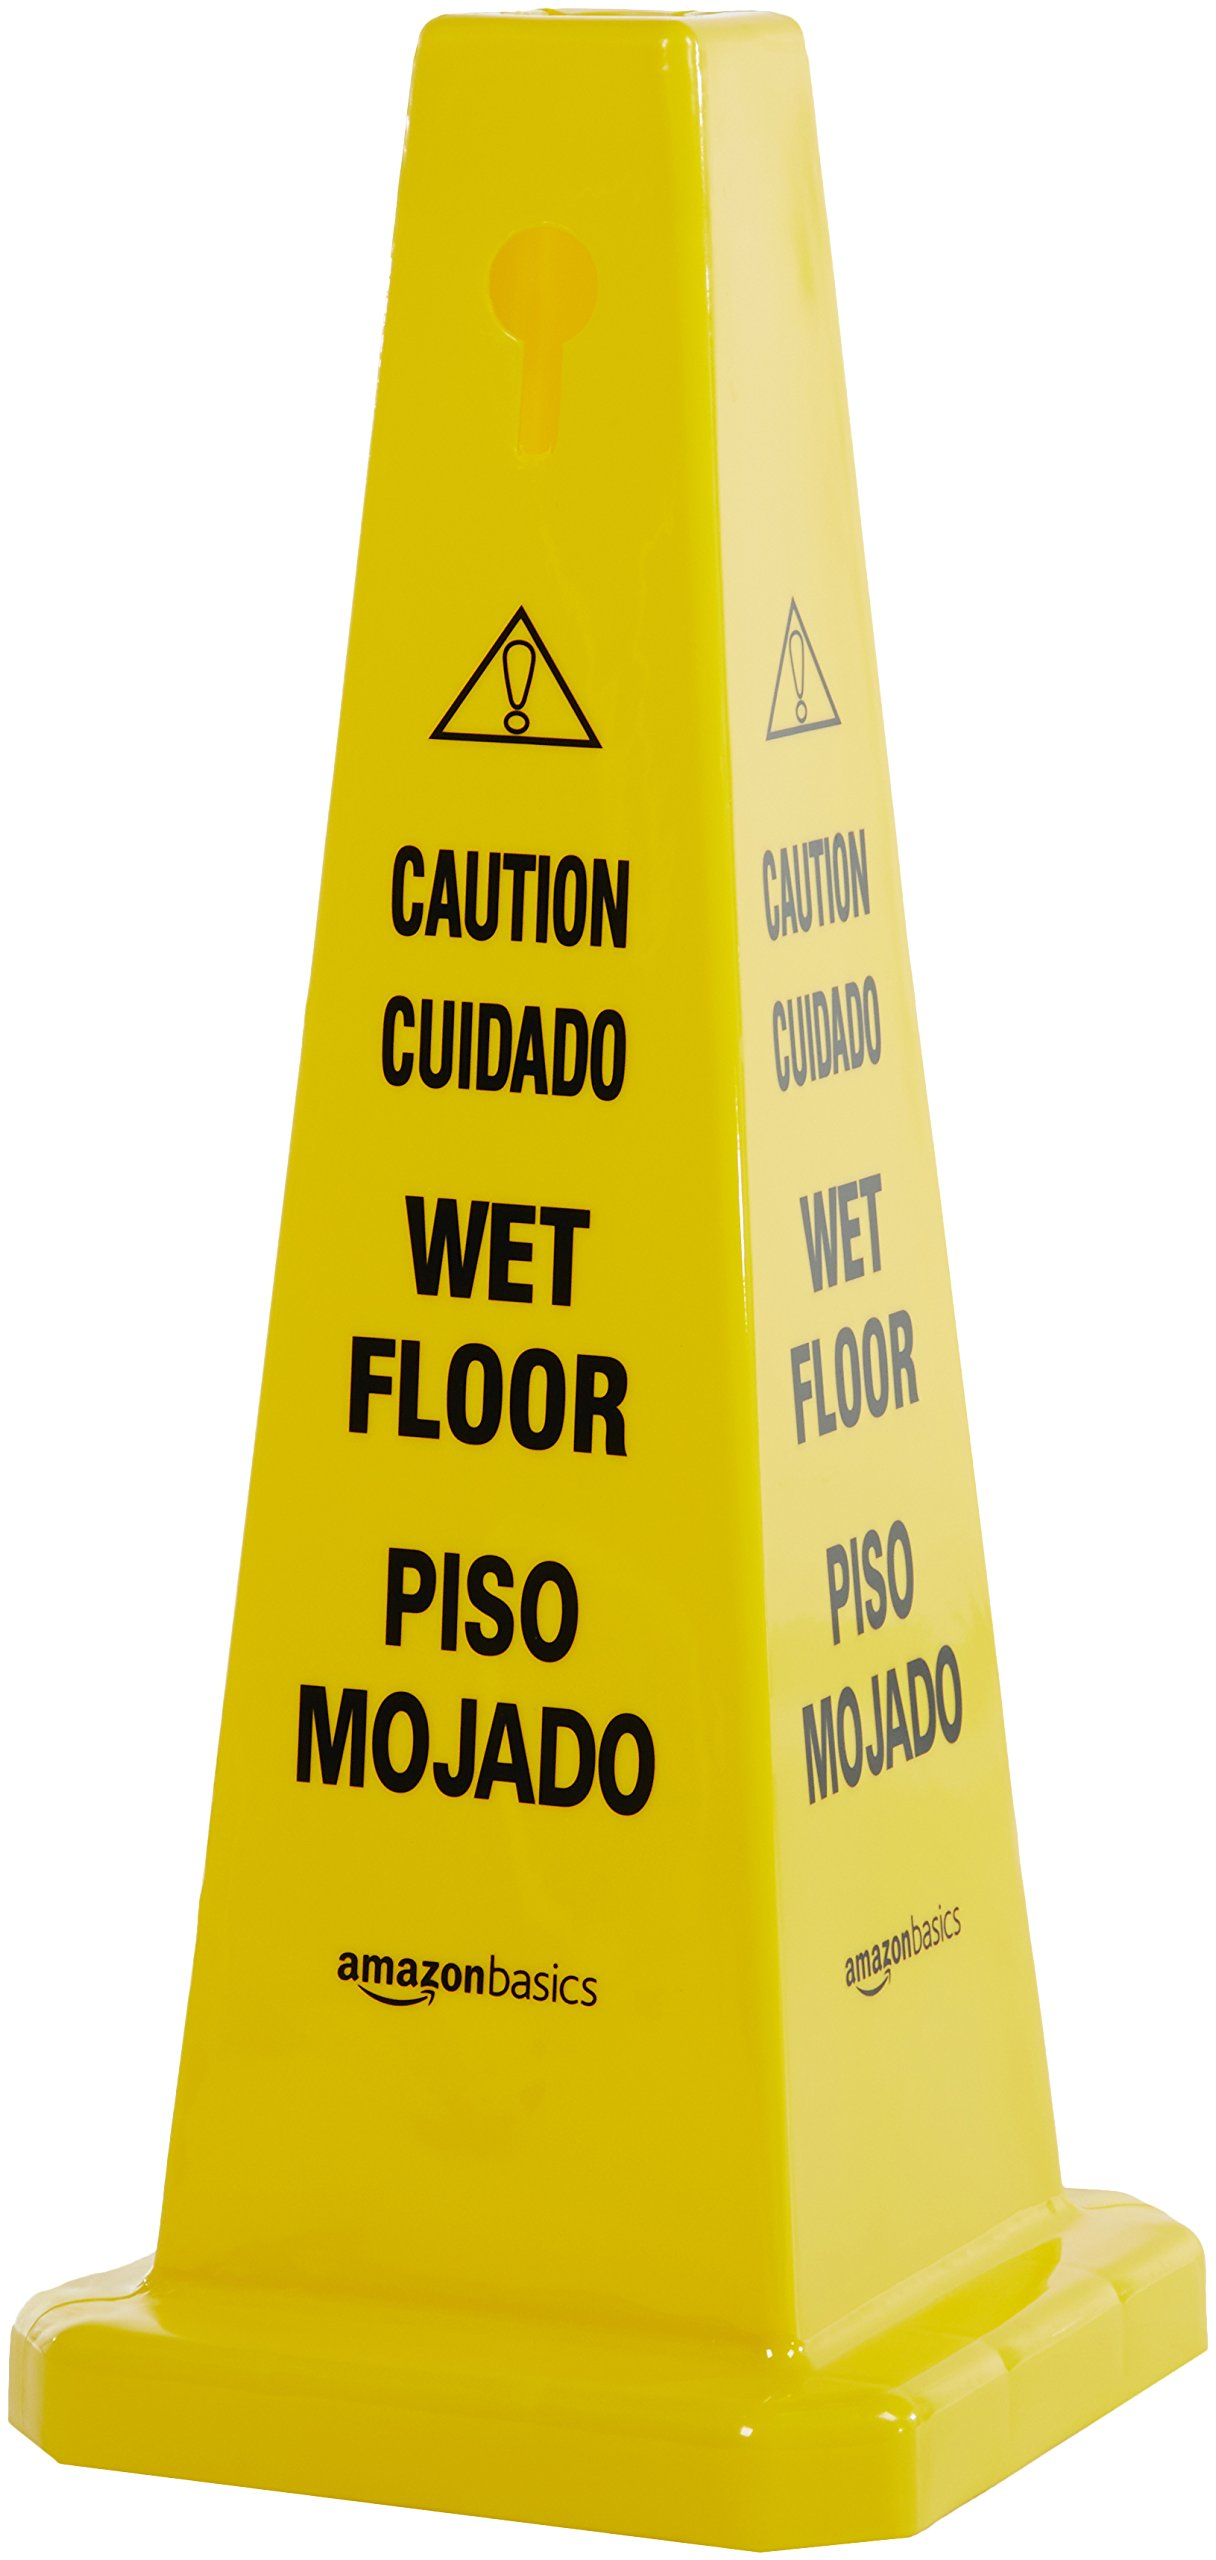 AmazonBasics Floor Safety Cone, Caution Wet Floor, 36 Inch, Bilingual, 6-Pack by AmazonBasics